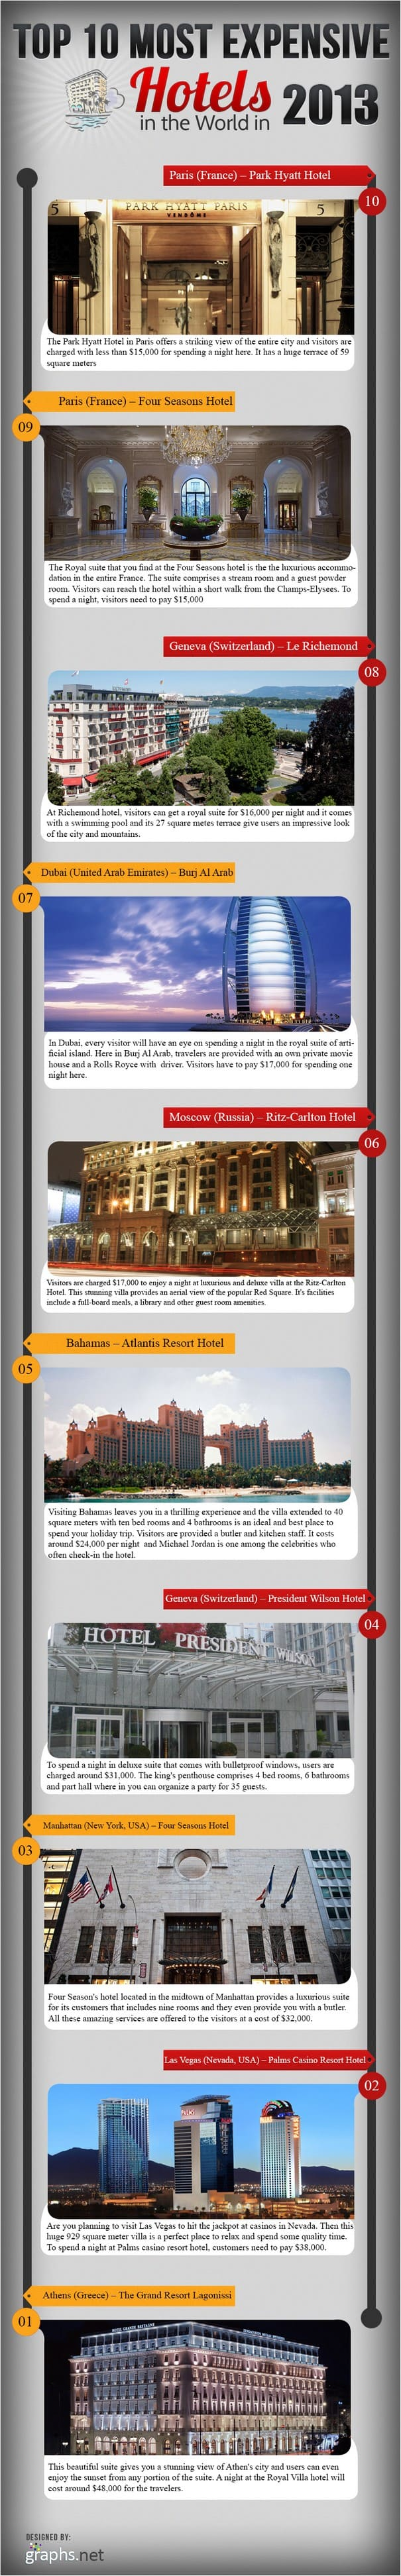 Top 10 Most Expensive Hotels in the World in 2013 Infographic